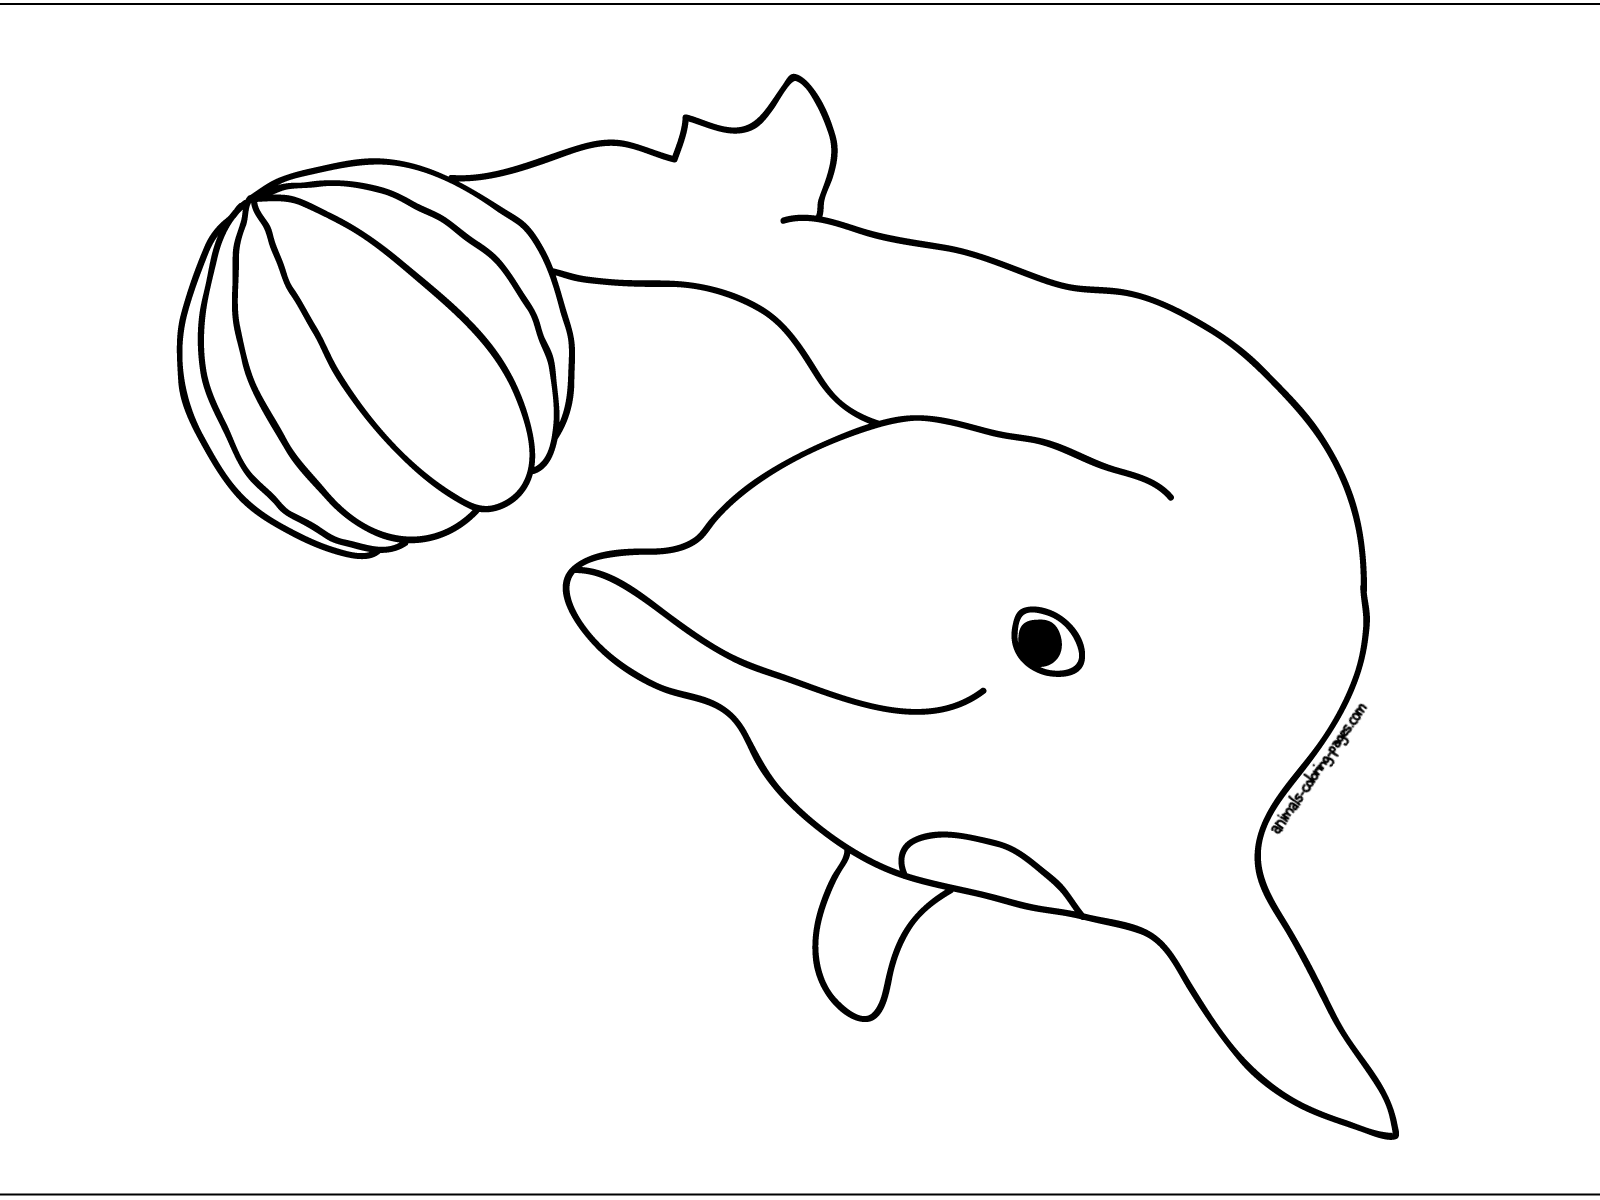 dolphin-play-ball-coloring-pages